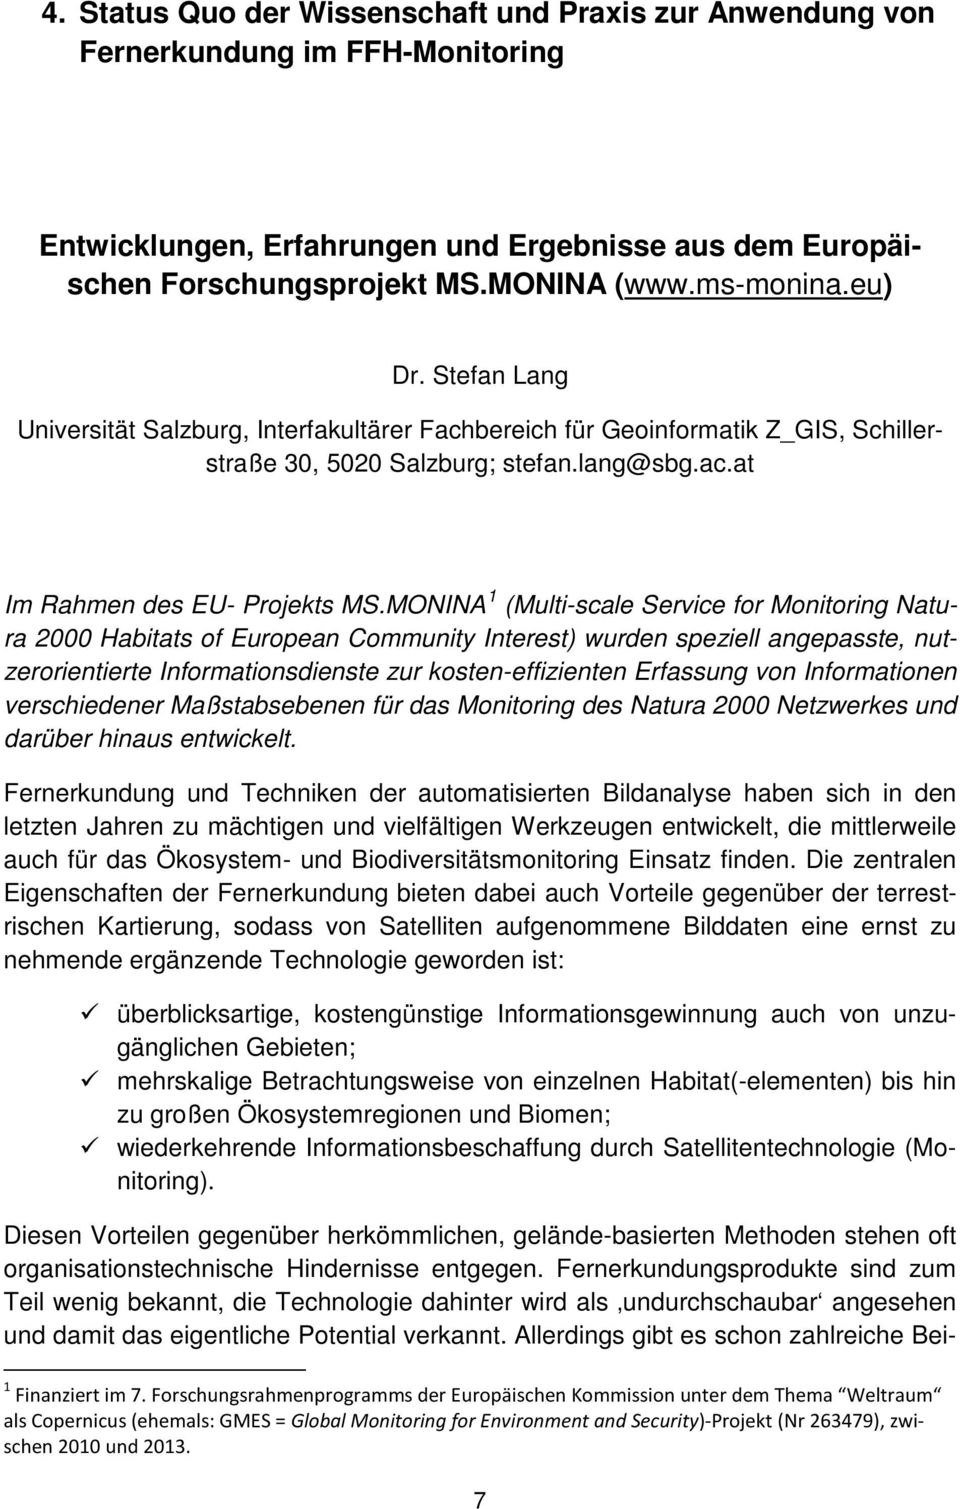 MONINA 1 (Multi-scale Service for Monitoring Natura 2000 Habitats of European Community Interest) wurden speziell angepasste, nutzerorientierte Informationsdienste zur kosten-effizienten Erfassung